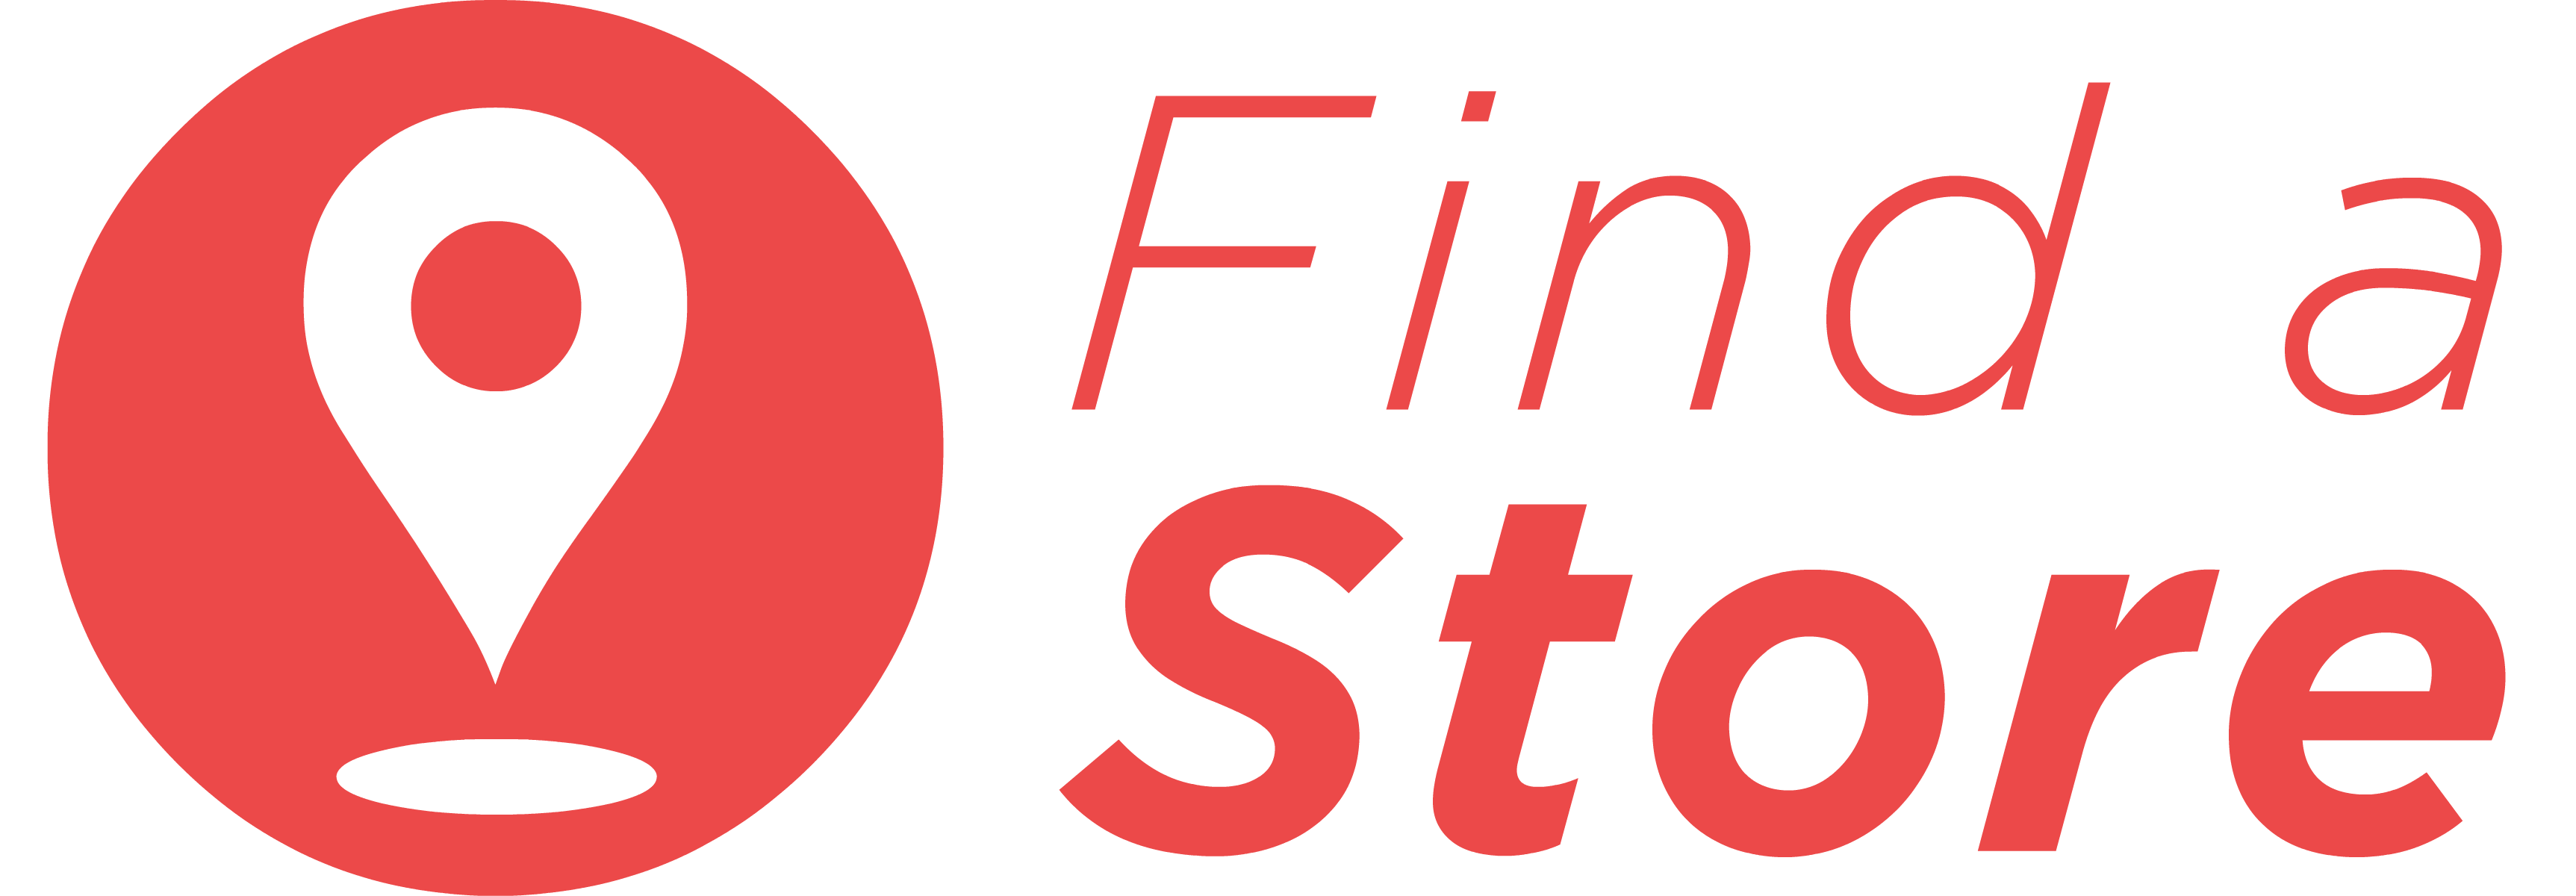 find-a-store-logo-text.png